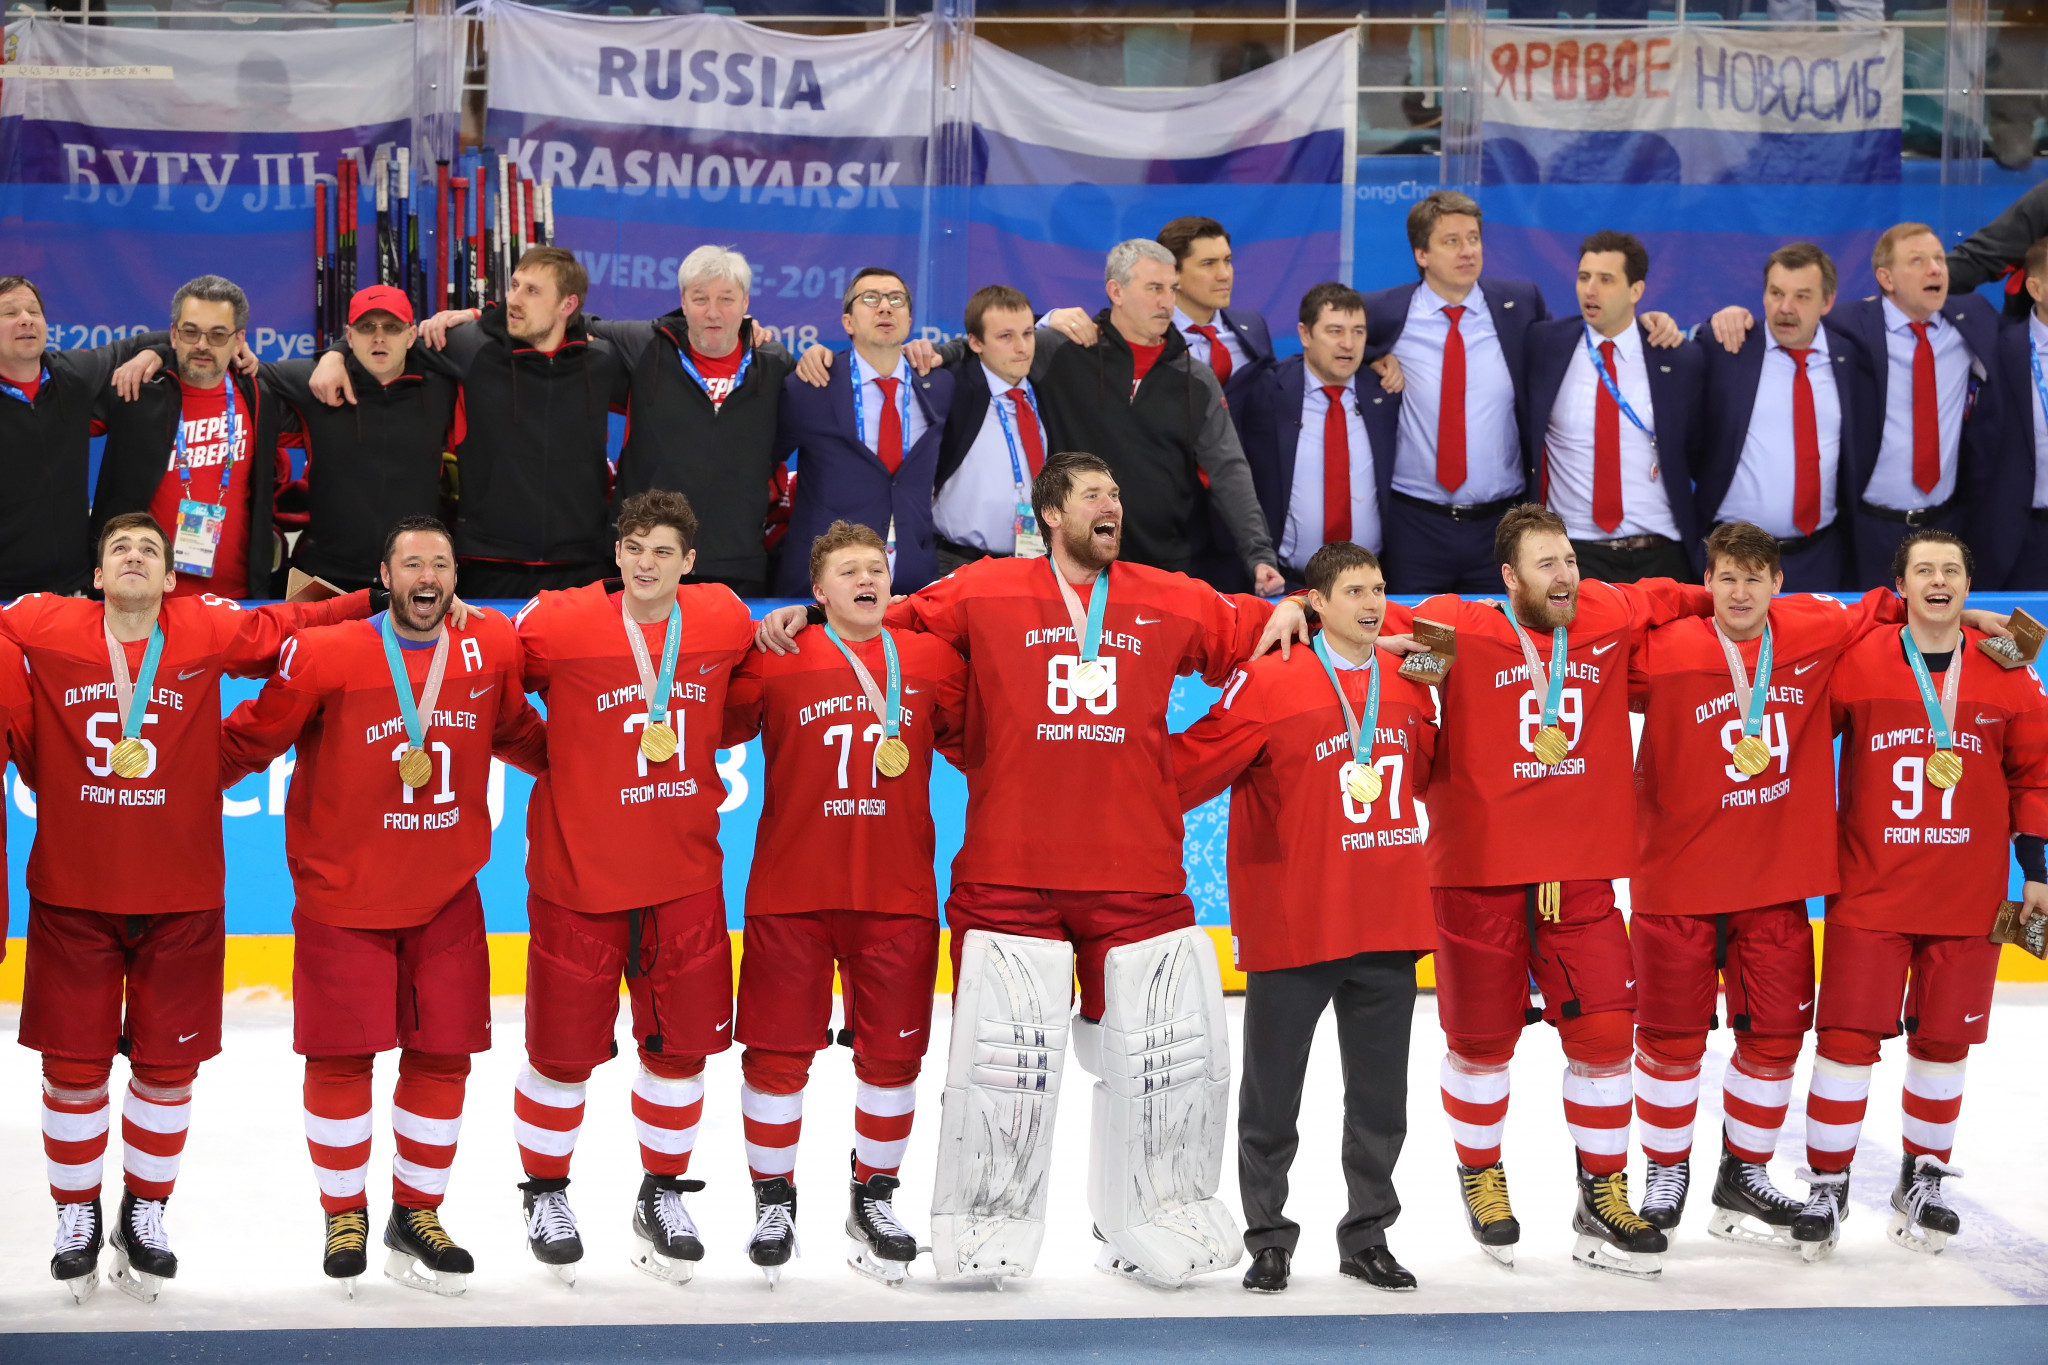 Olympic Athletes from Russia won the men's gold medal at Pyeongchang 2018 ©Getty Images